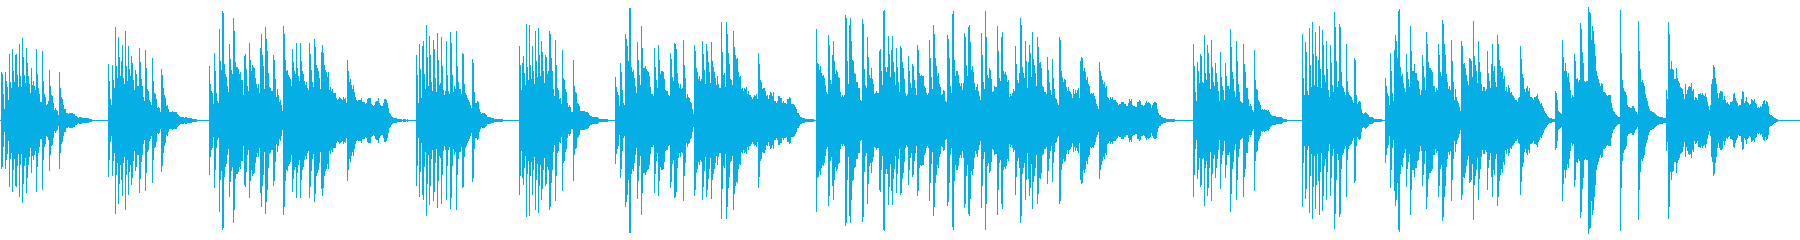 Healing music played on the piano's reproduced waveform